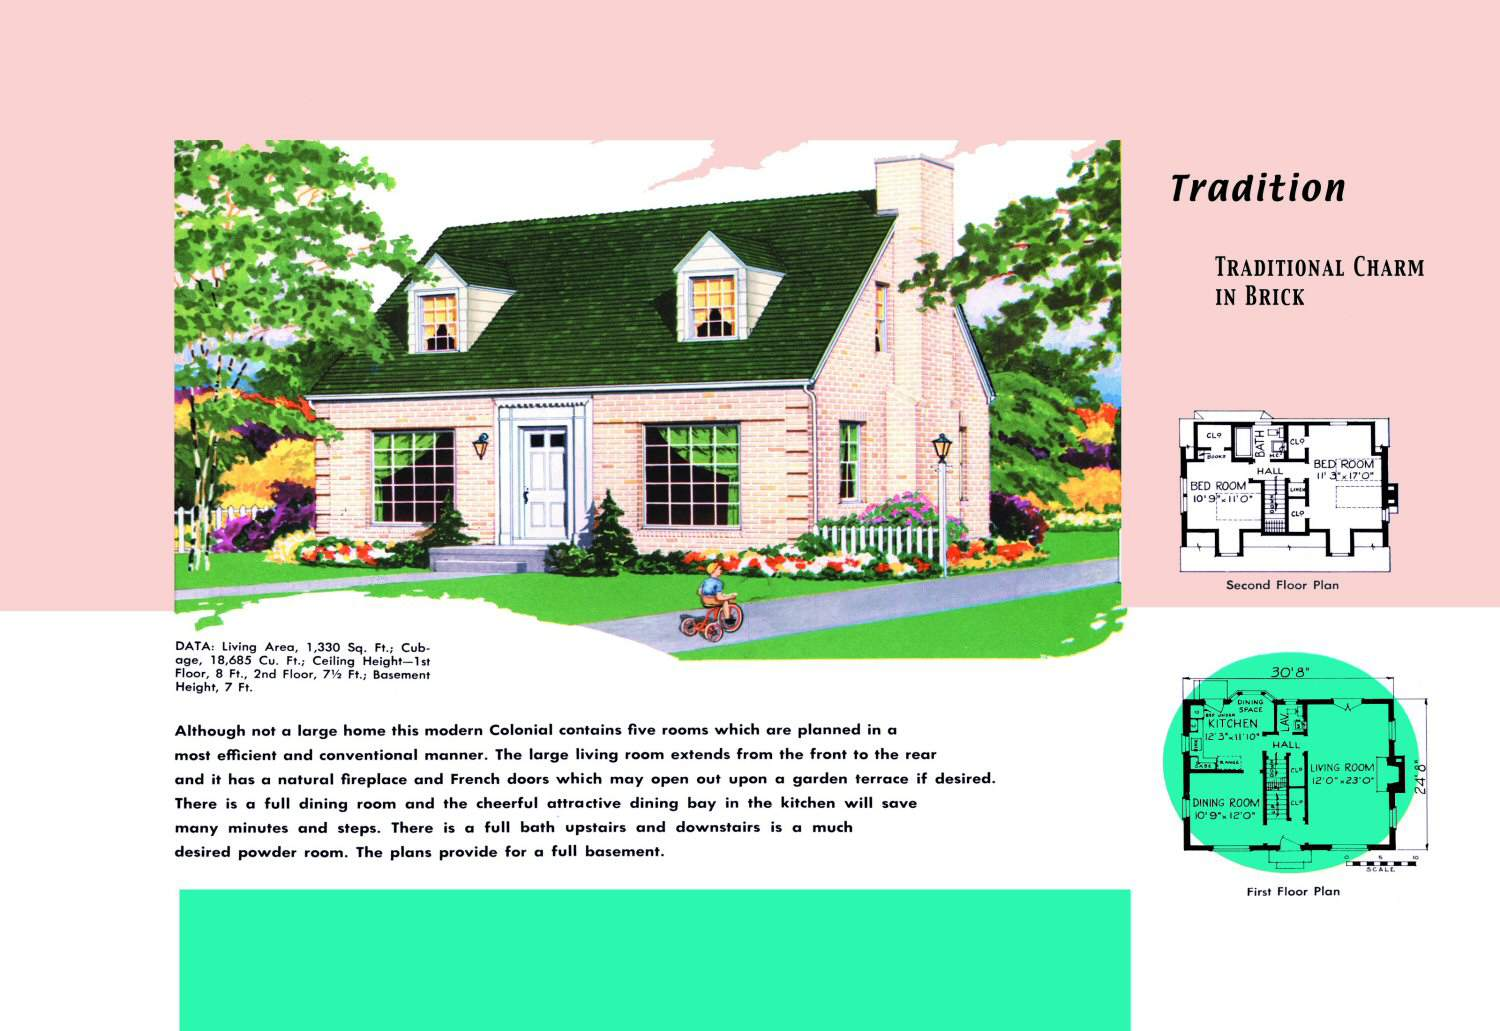 l shaped ranch house plans, original levittown house floor plans, 1945 house plans, cape cod cottage plans, on 1948 cape cod house plans